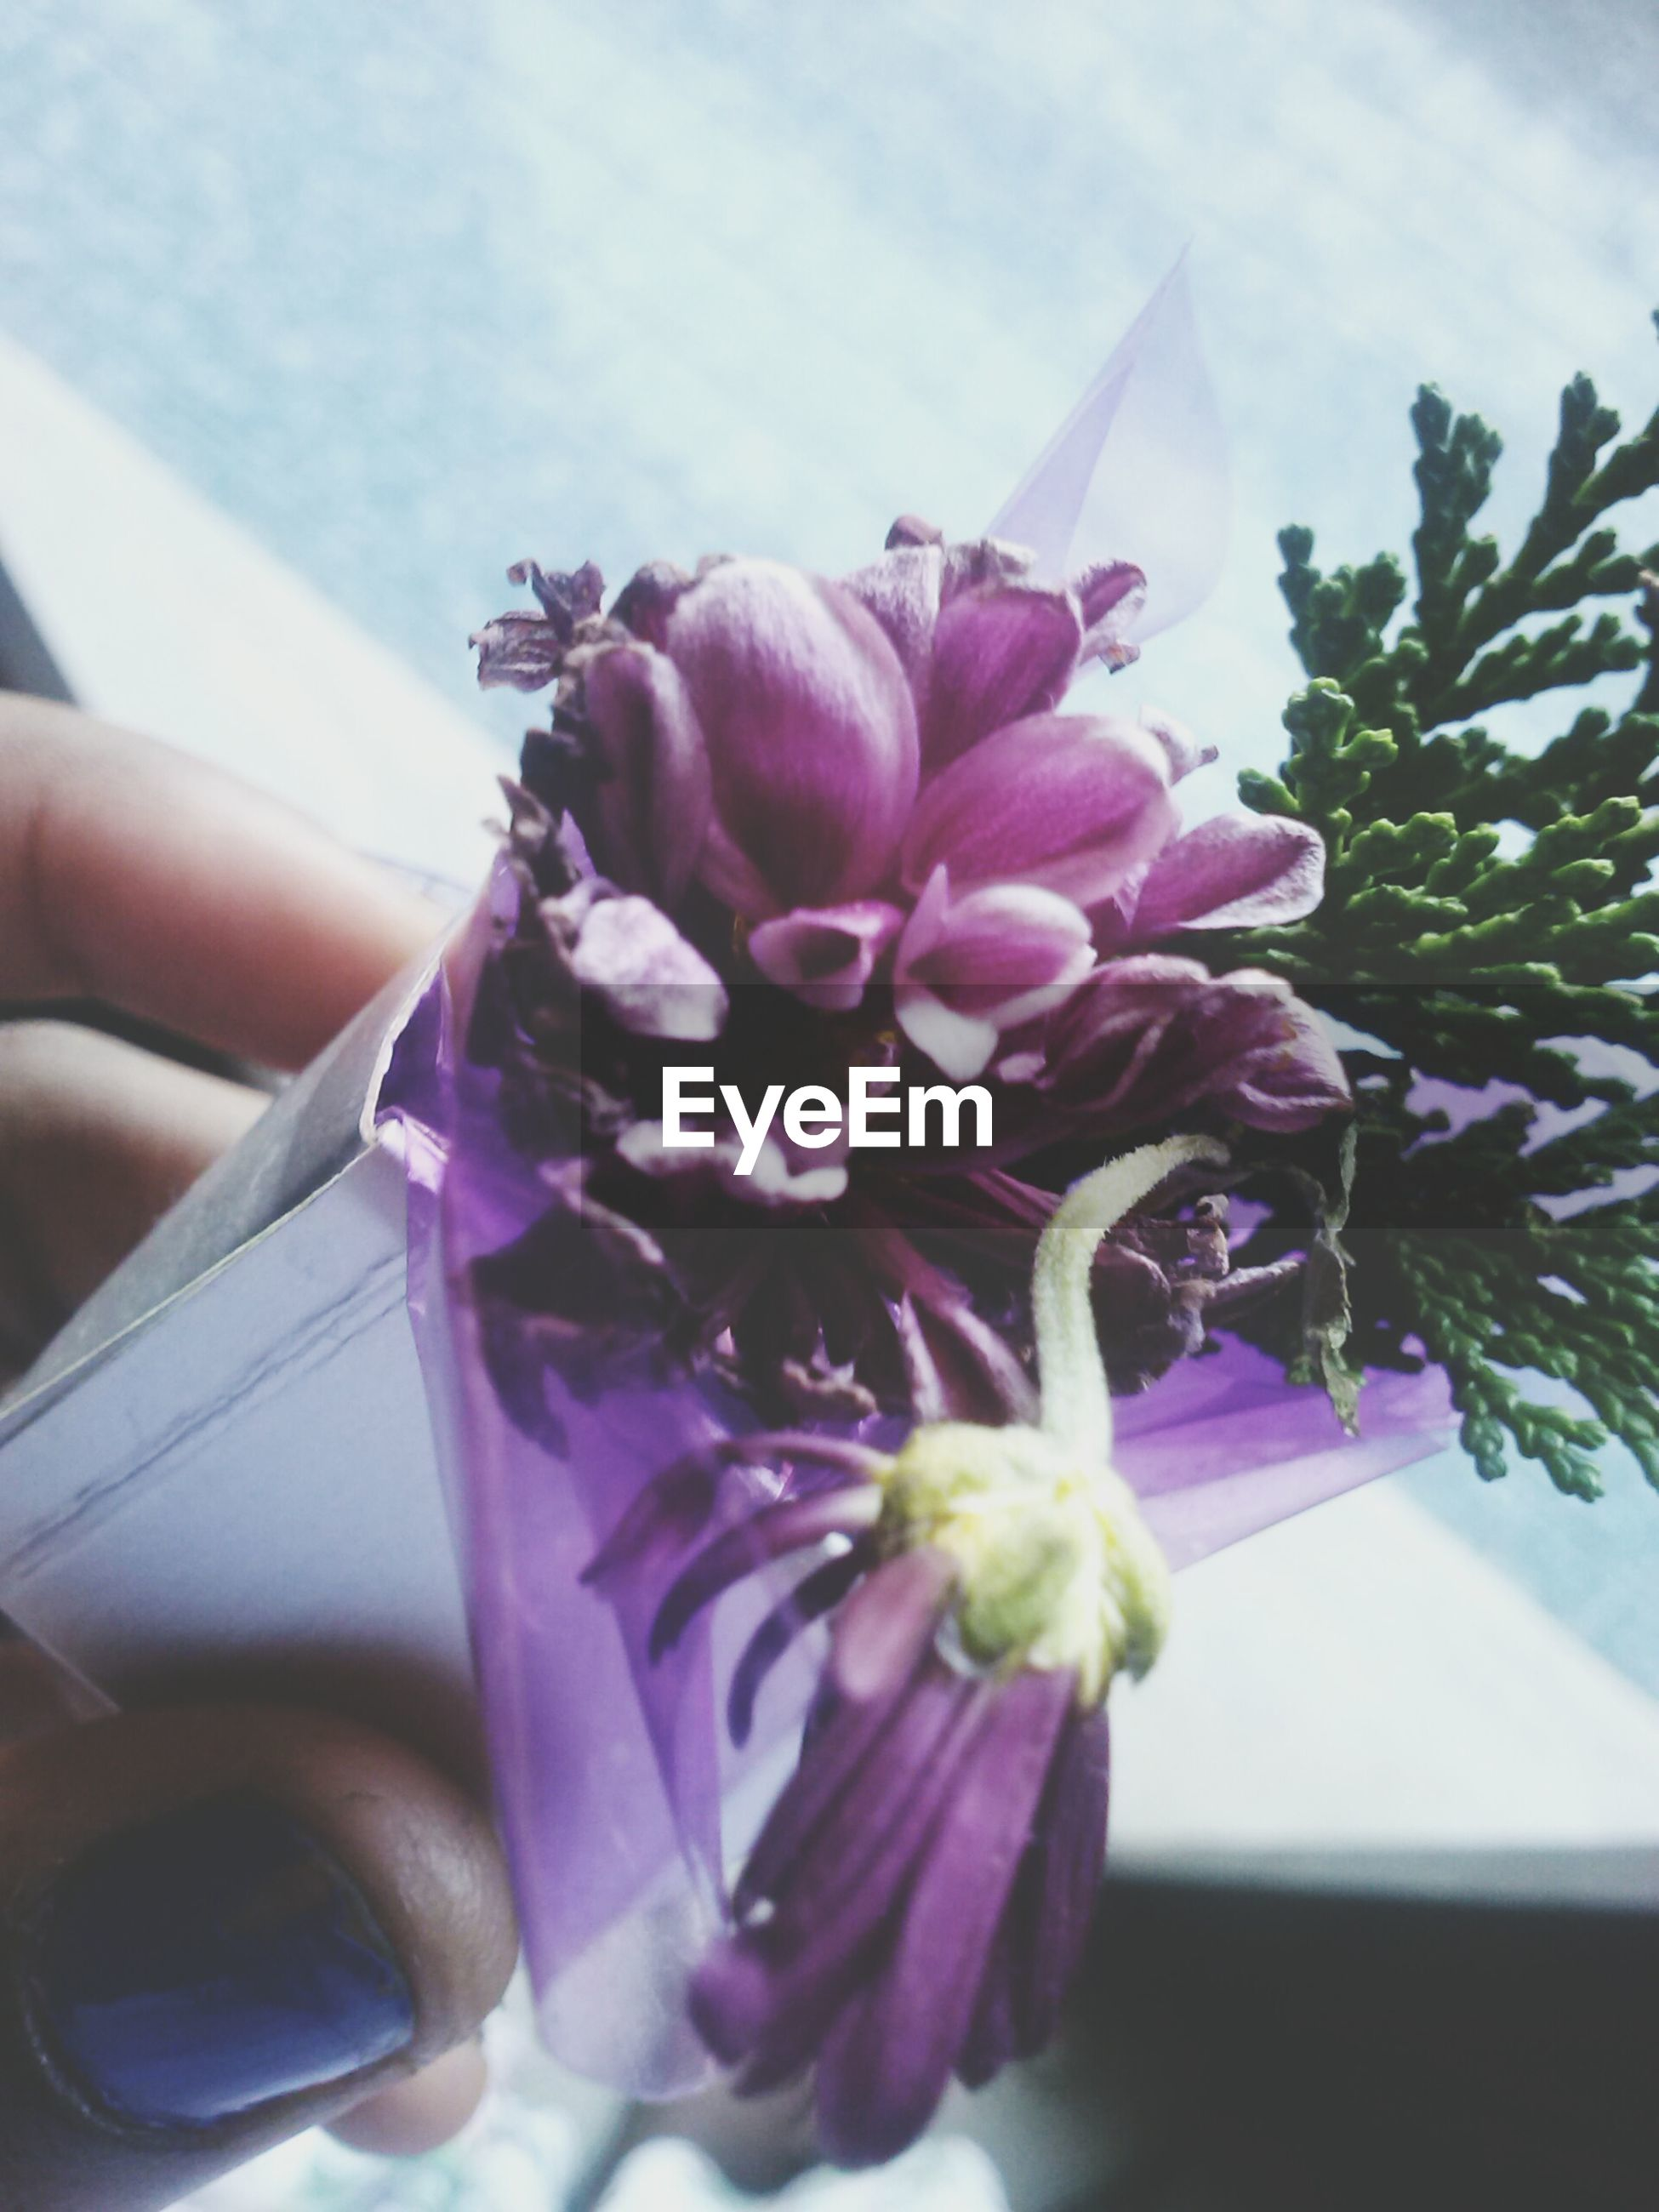 flower, freshness, petal, fragility, flower head, close-up, indoors, person, pink color, part of, focus on foreground, vase, cropped, table, beauty in nature, purple, growth, single flower, nature, plant